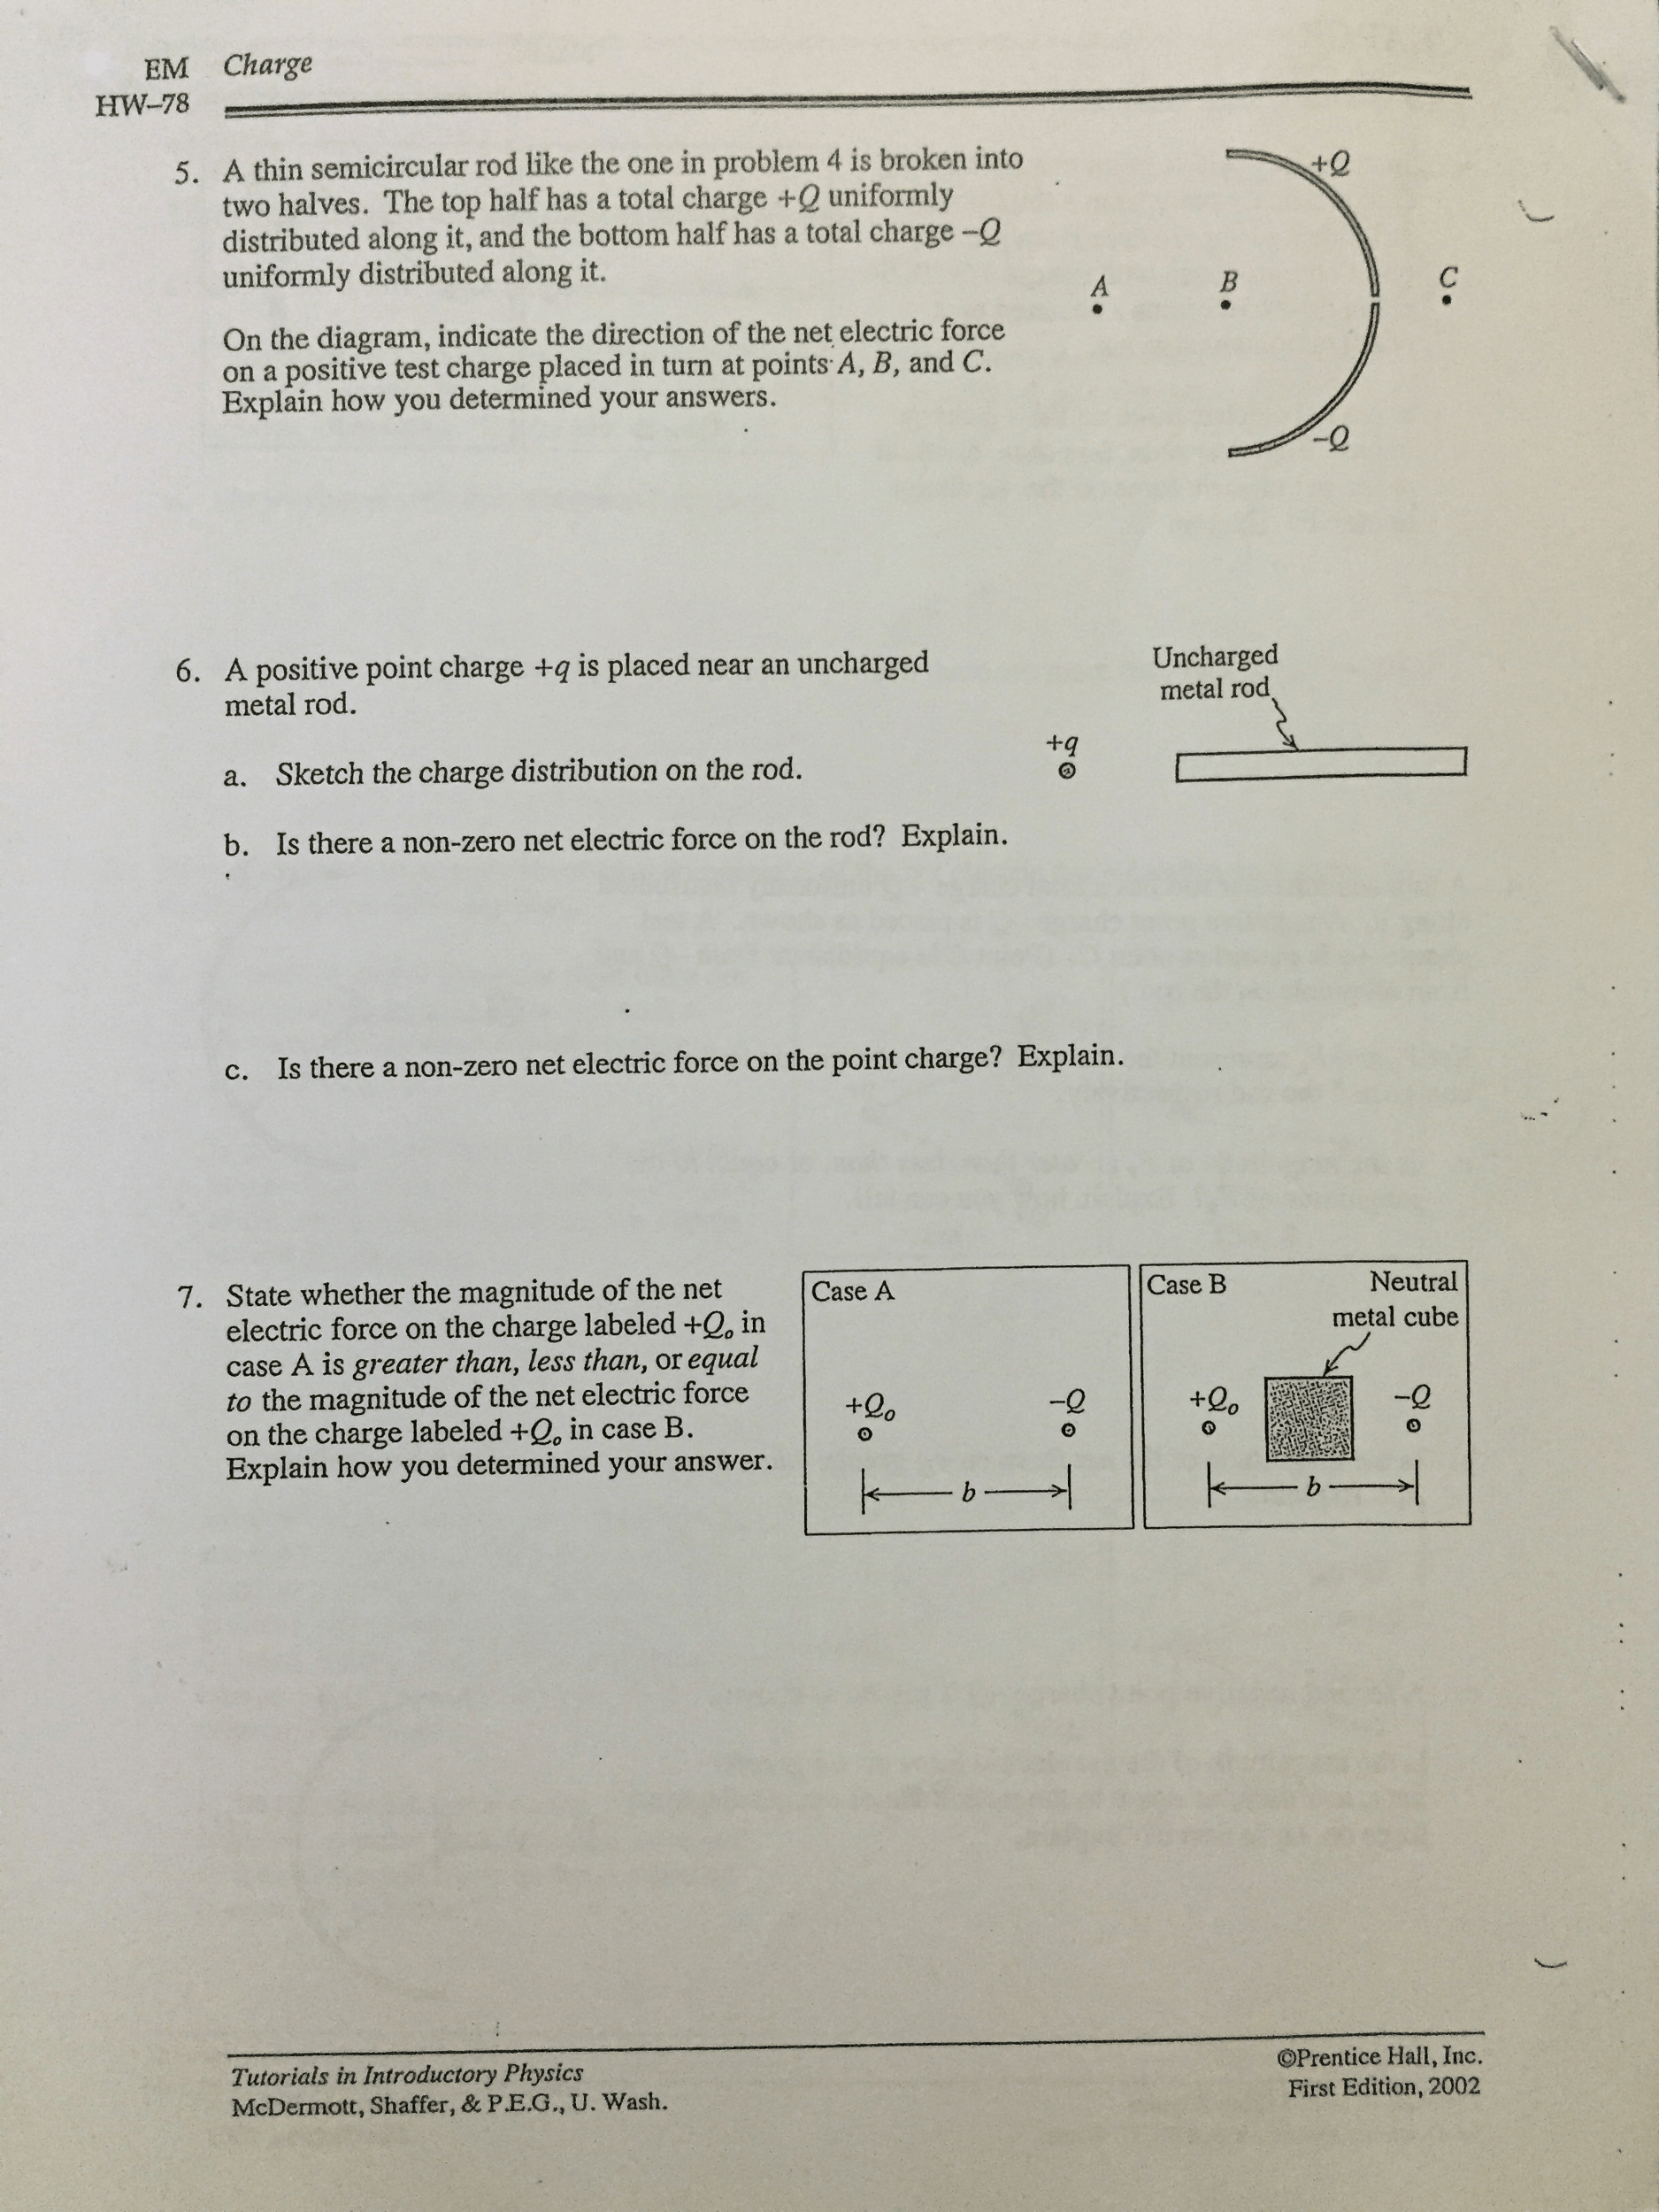 Tutorials In Introductory Physics Homework Solutions